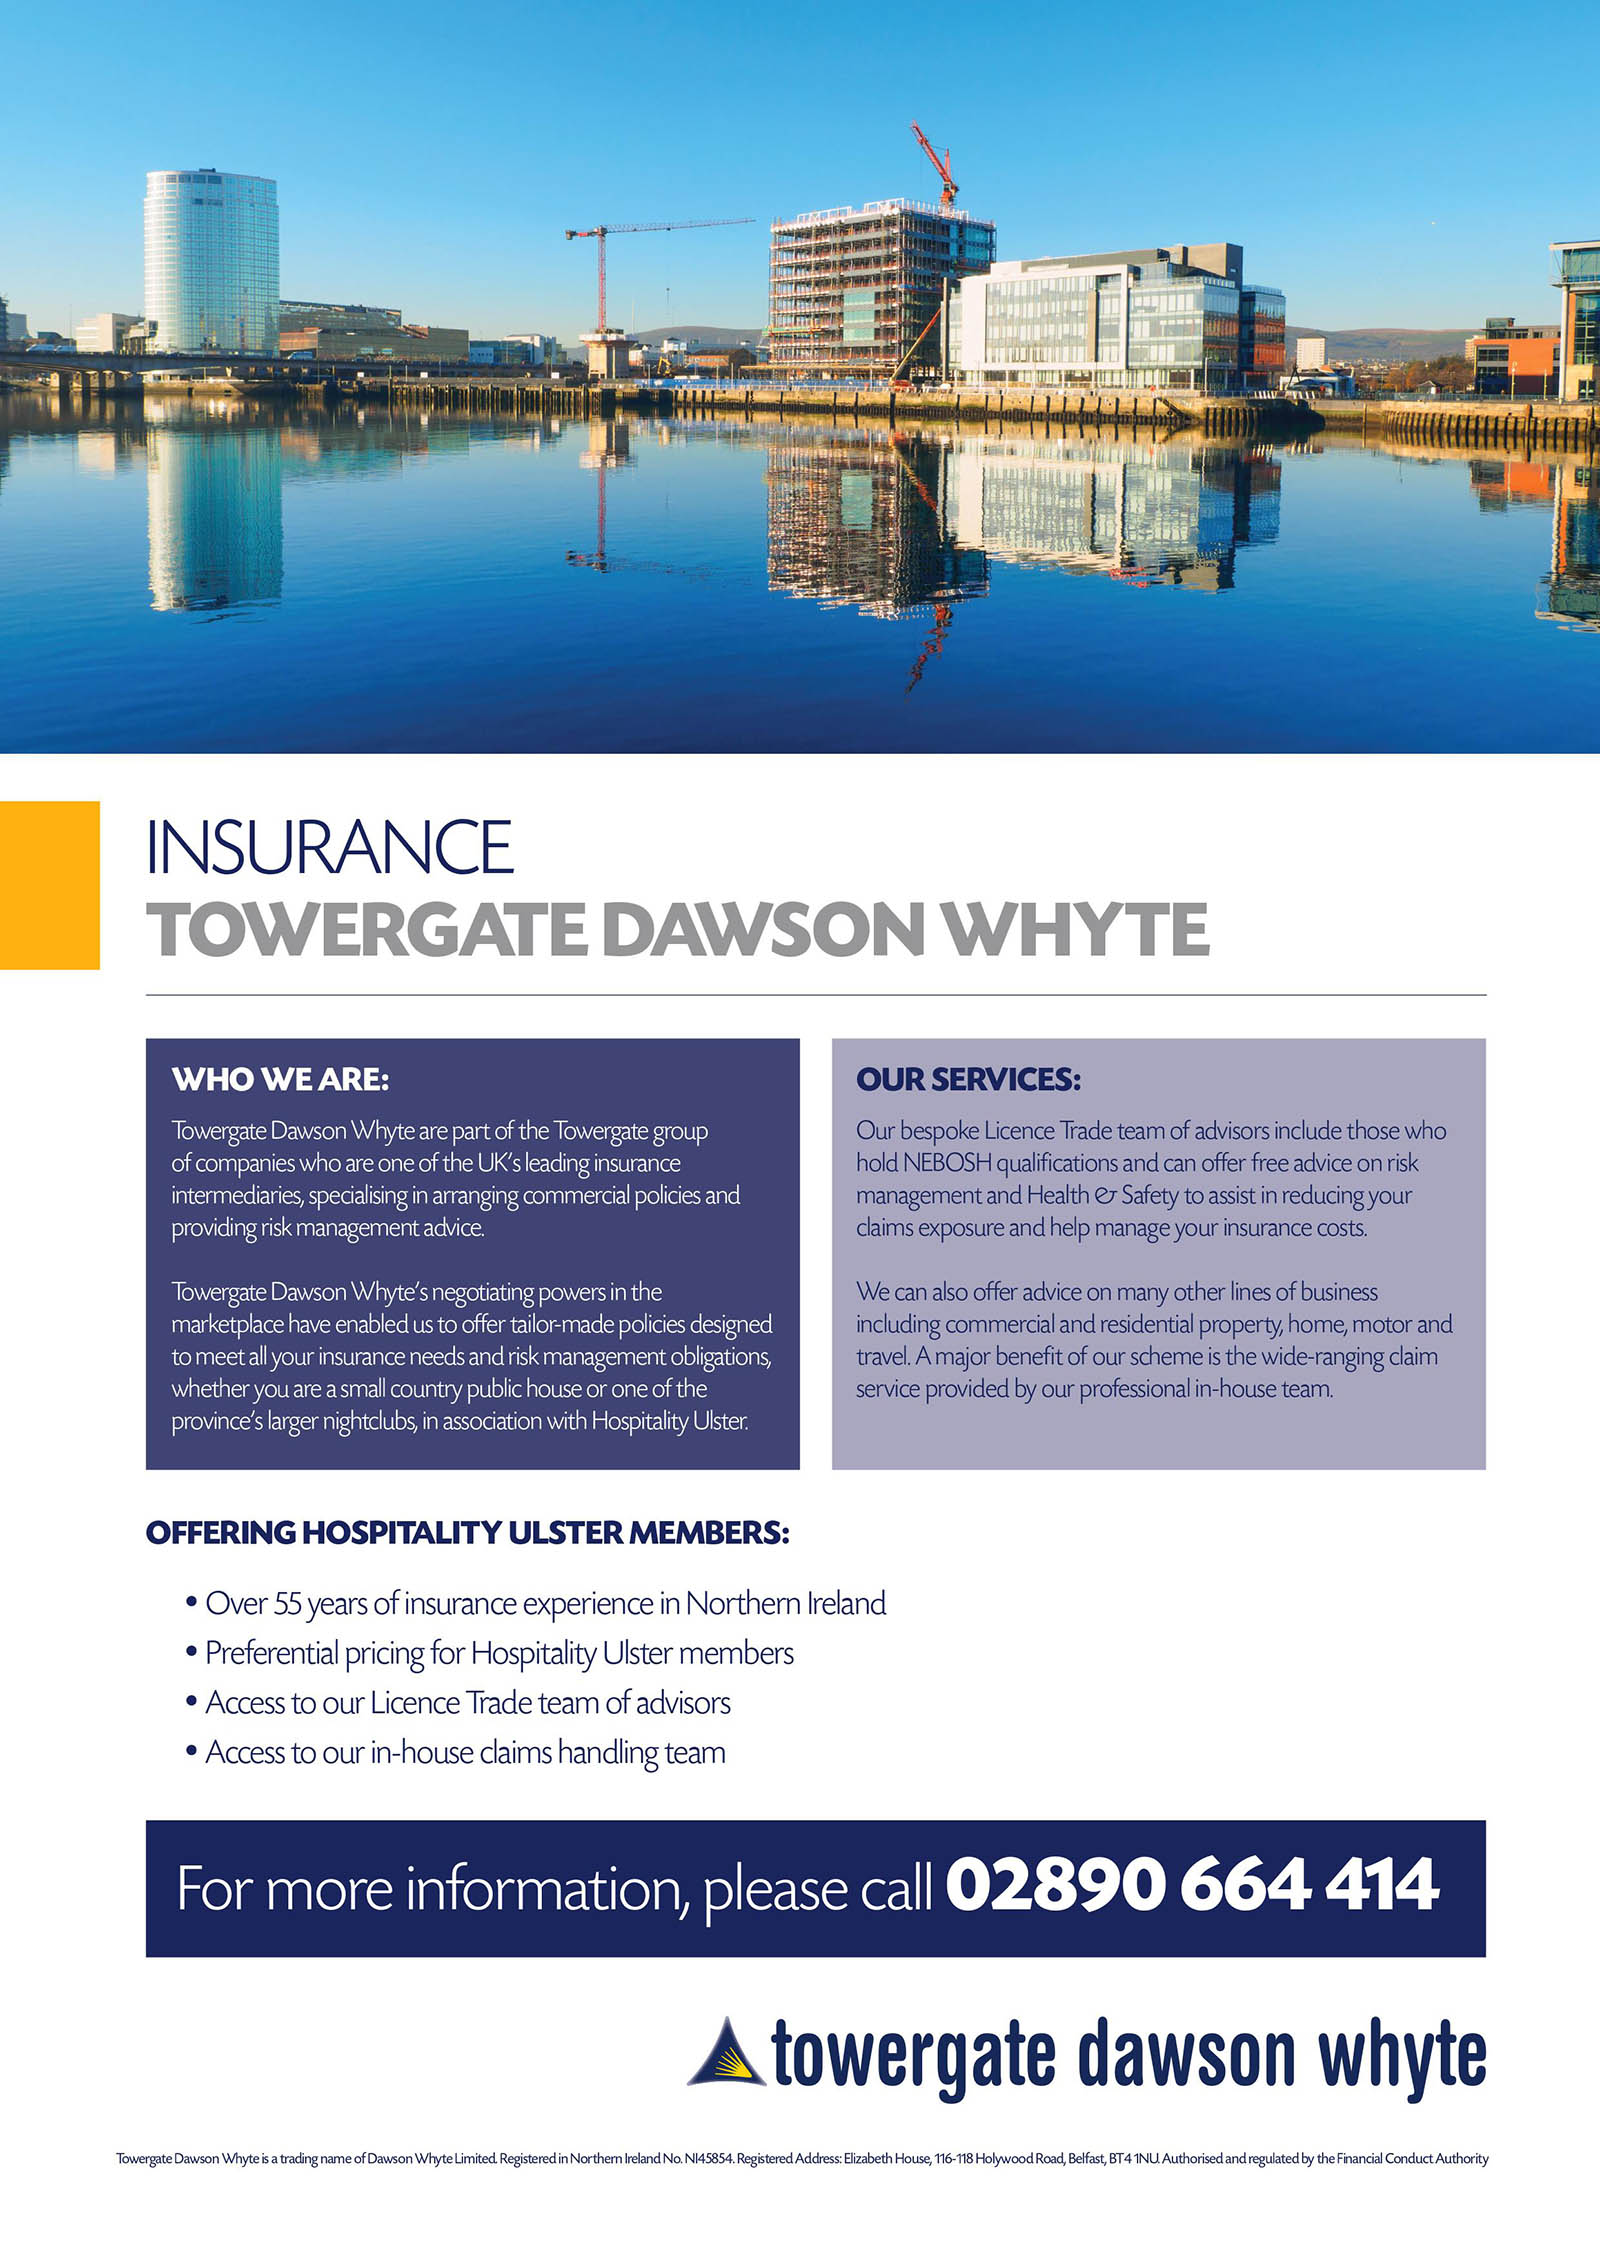 towergate-insurance-main-1-of-4-image.jpg